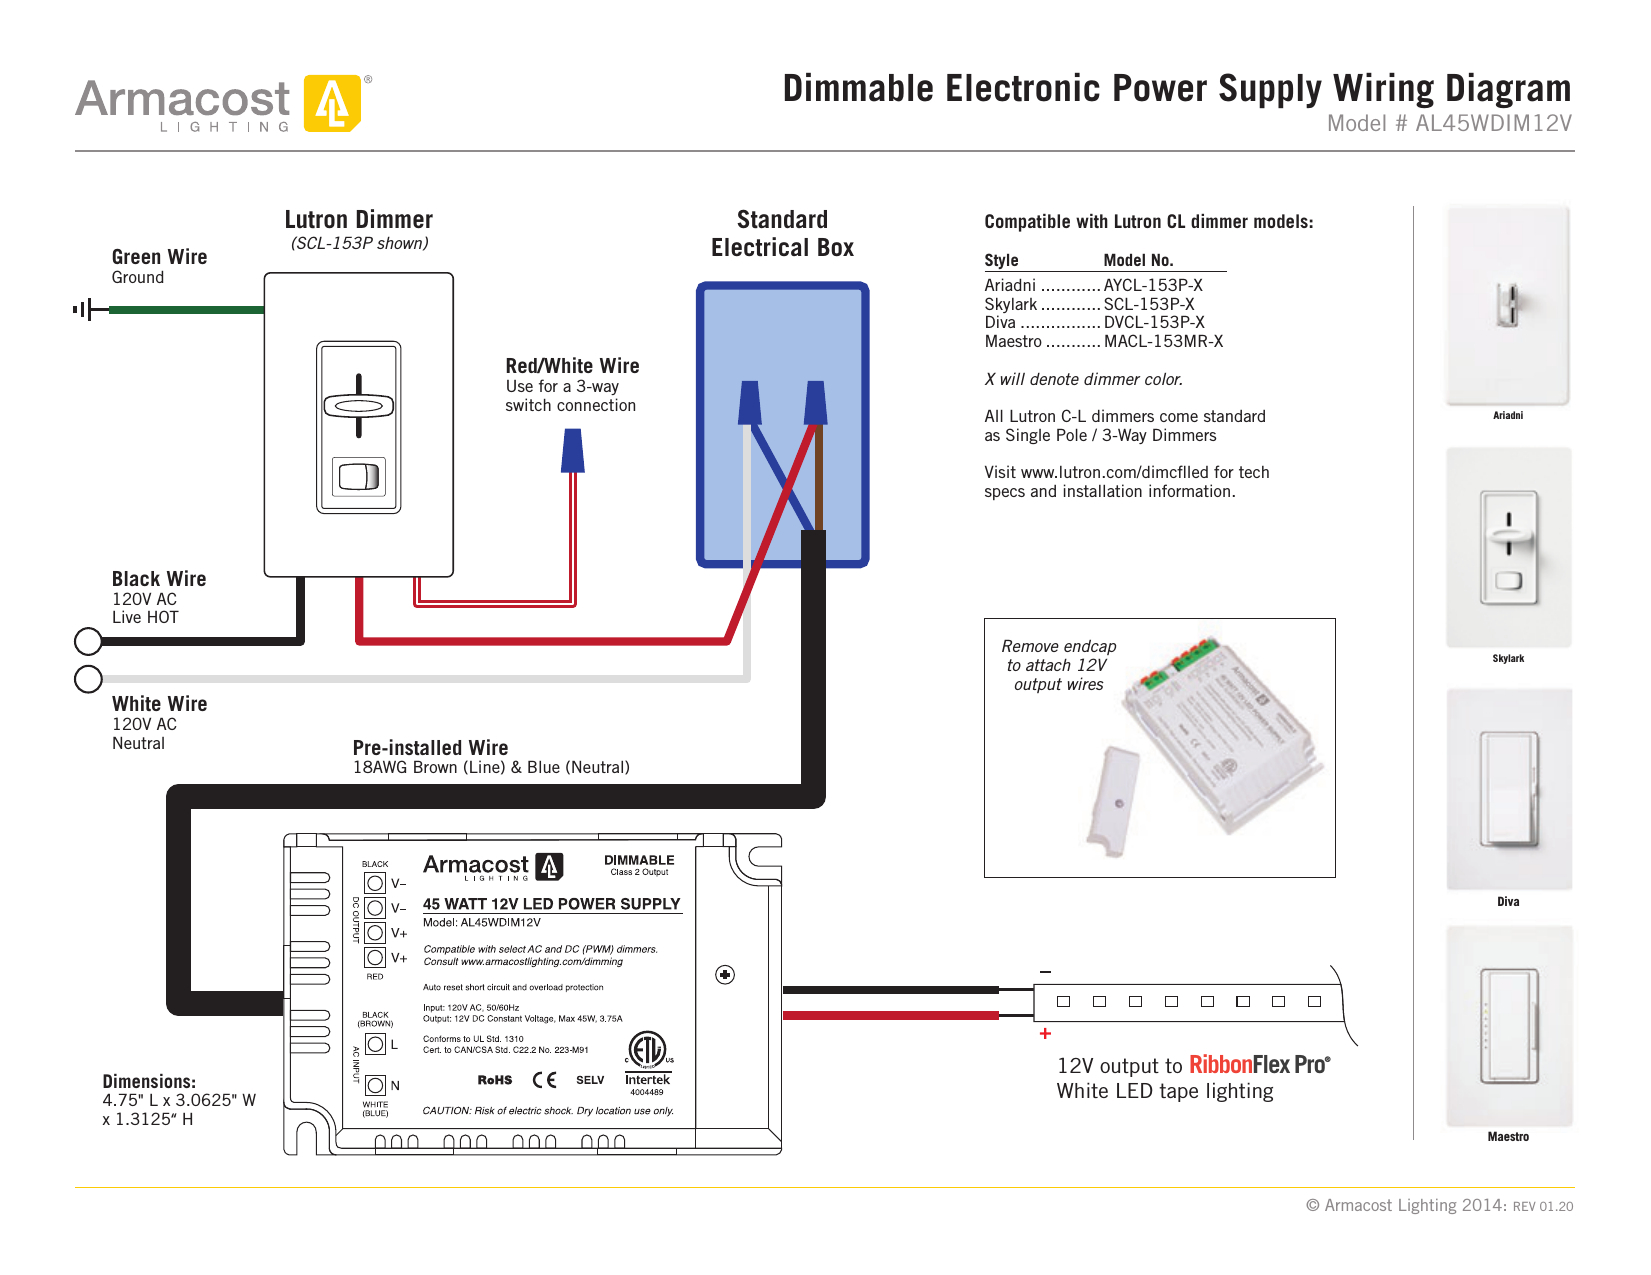 lutron cl dimmer wiring diagram Download-lutron diva cl wiring diagram Collection lutron skylark dimmer wiring diagram Unique Lutron Dimmer Switch 5-o